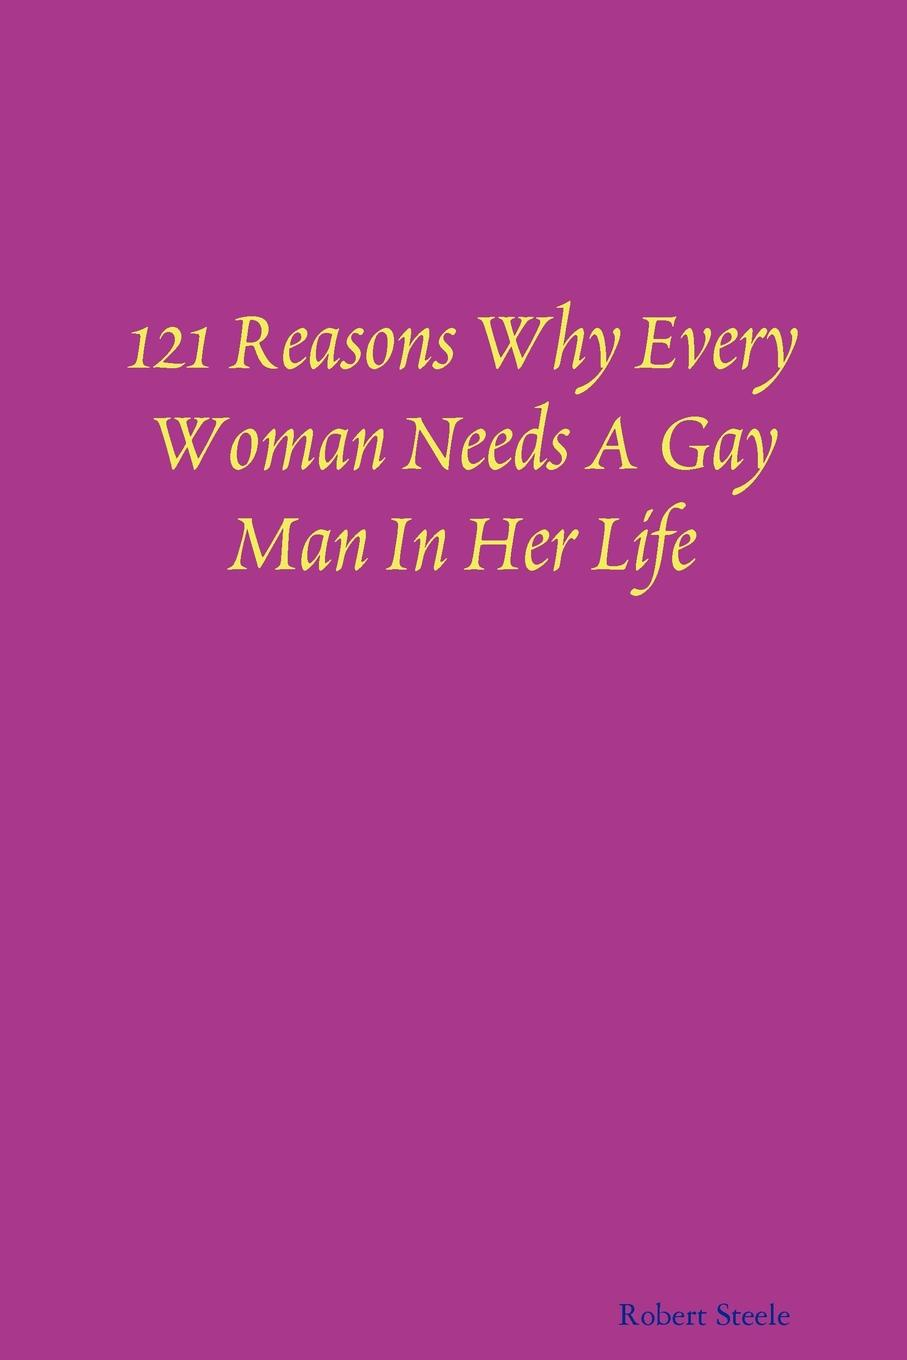 Robert Steele 121 Reasons Why Every Woman Needs A Gay Man In Her Life